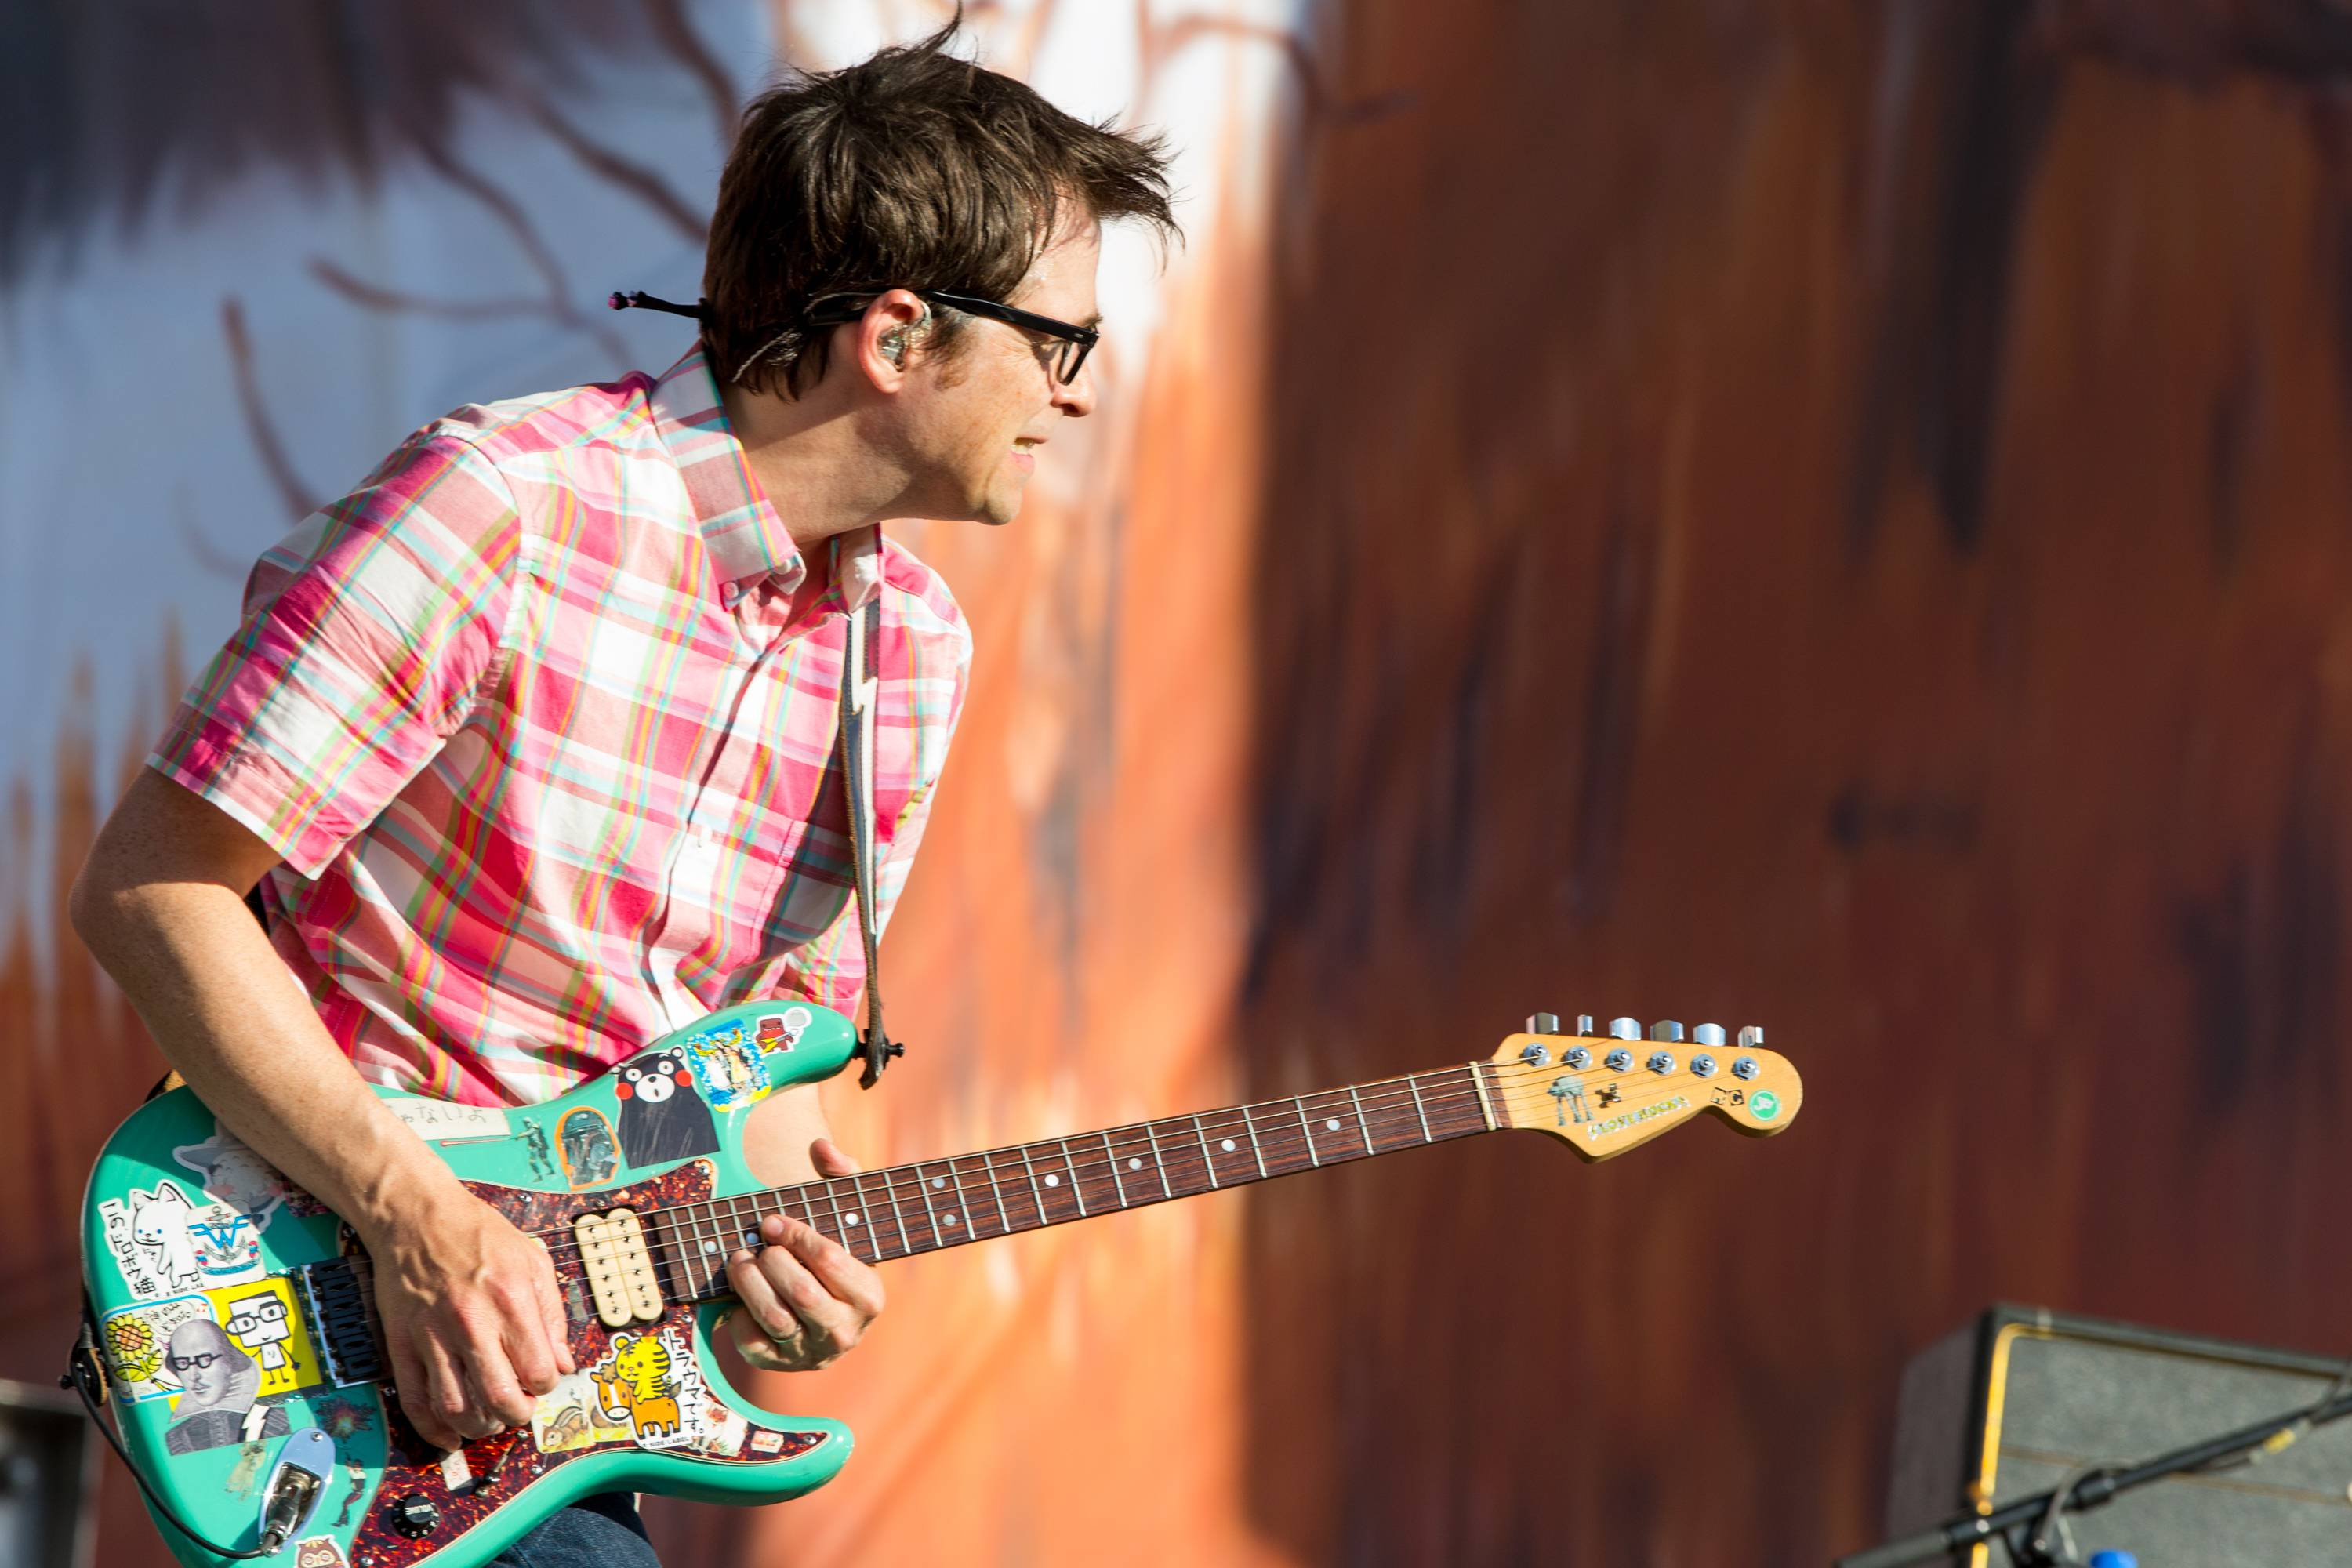 Rivers Cuomo of Weezer performs on stage during the Made In America Festival at Grand Park on Sunday, Aug. 31, 2014, in Los Angeles, Calif.